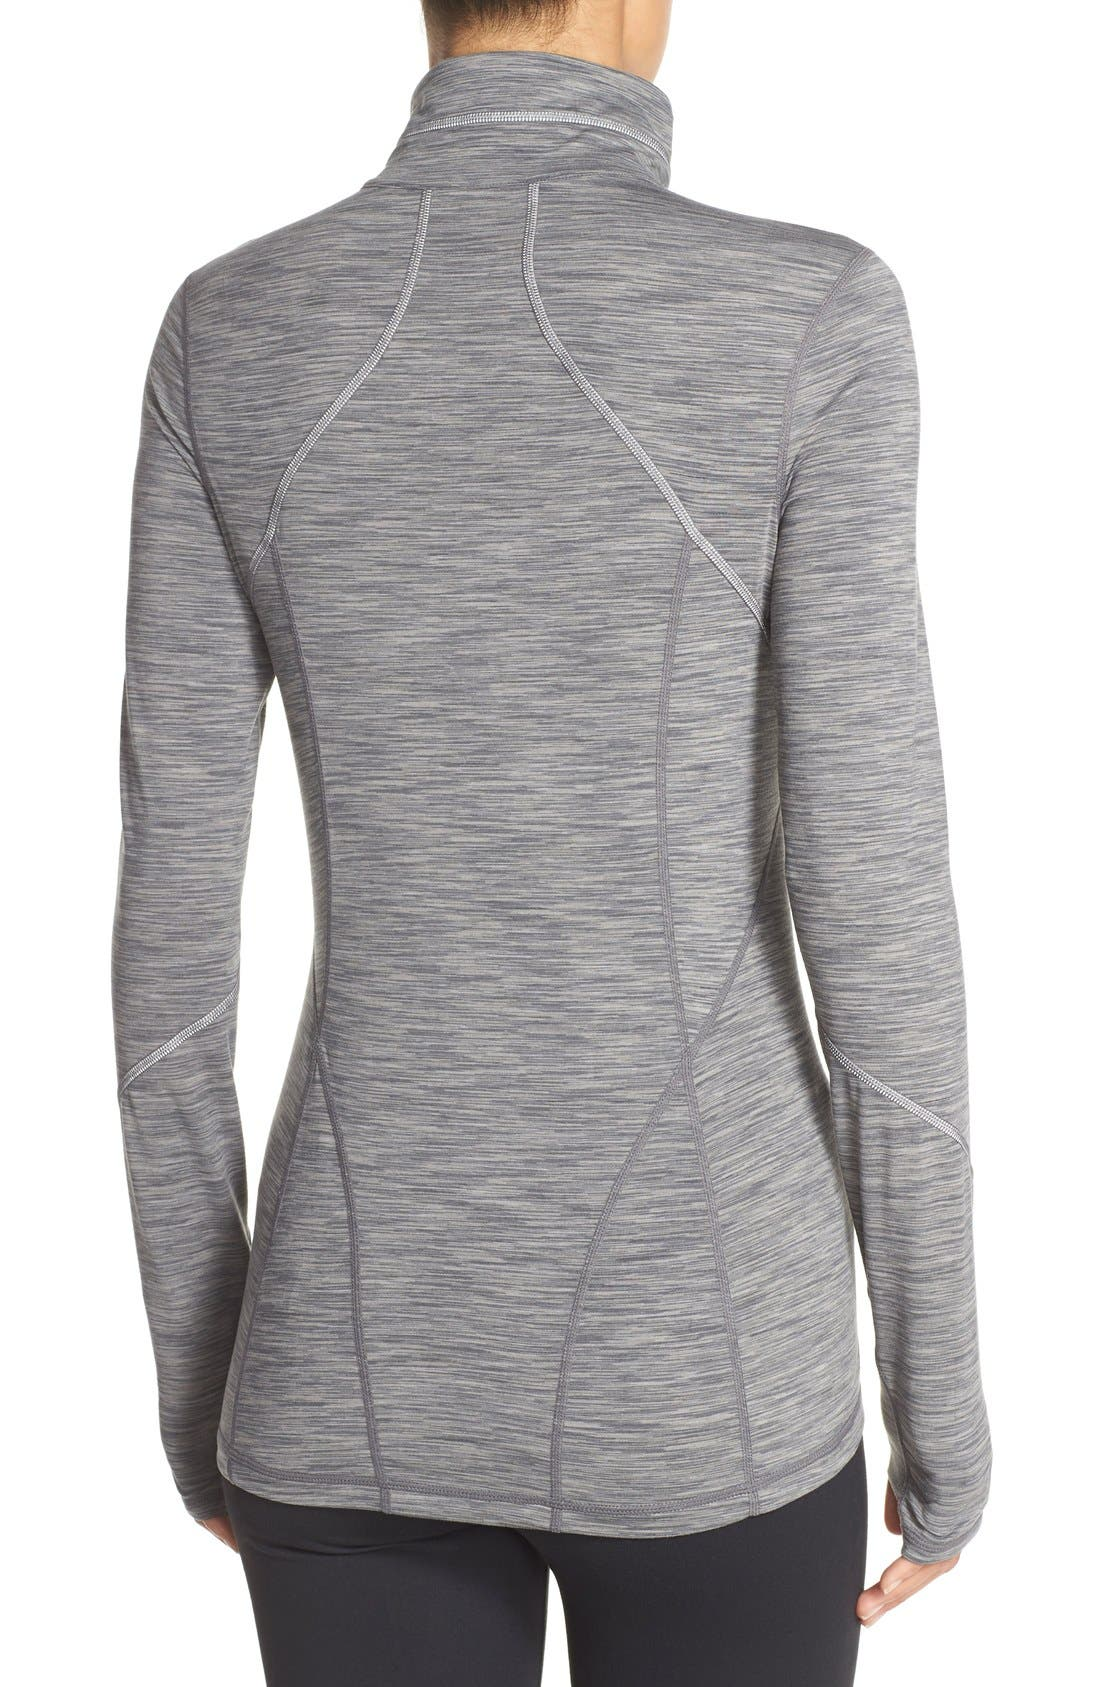 Alternate Image 2  - Zella 'Revelation' Half Zip Top